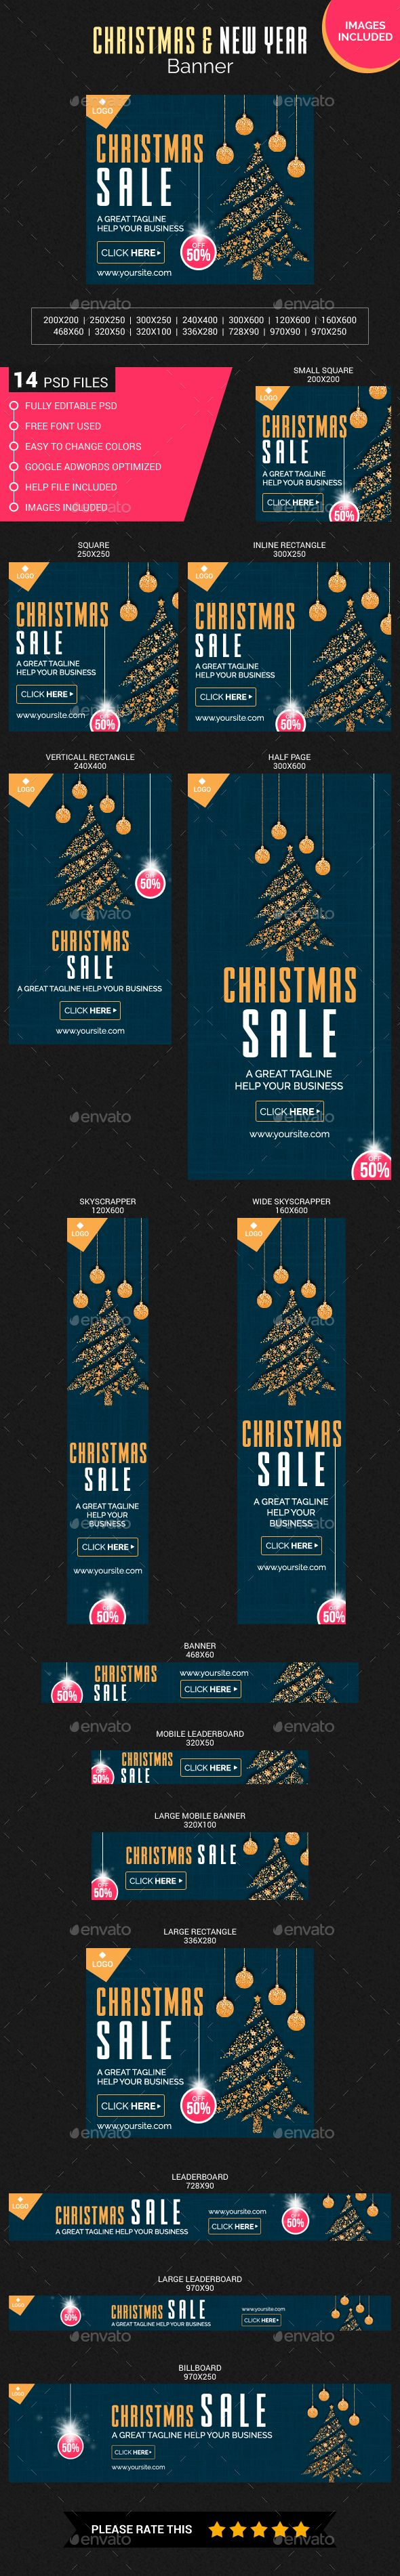 this is a christmas and new year web banners which is fully editable pack included 14 psd files 72 dpi rgb color mode images